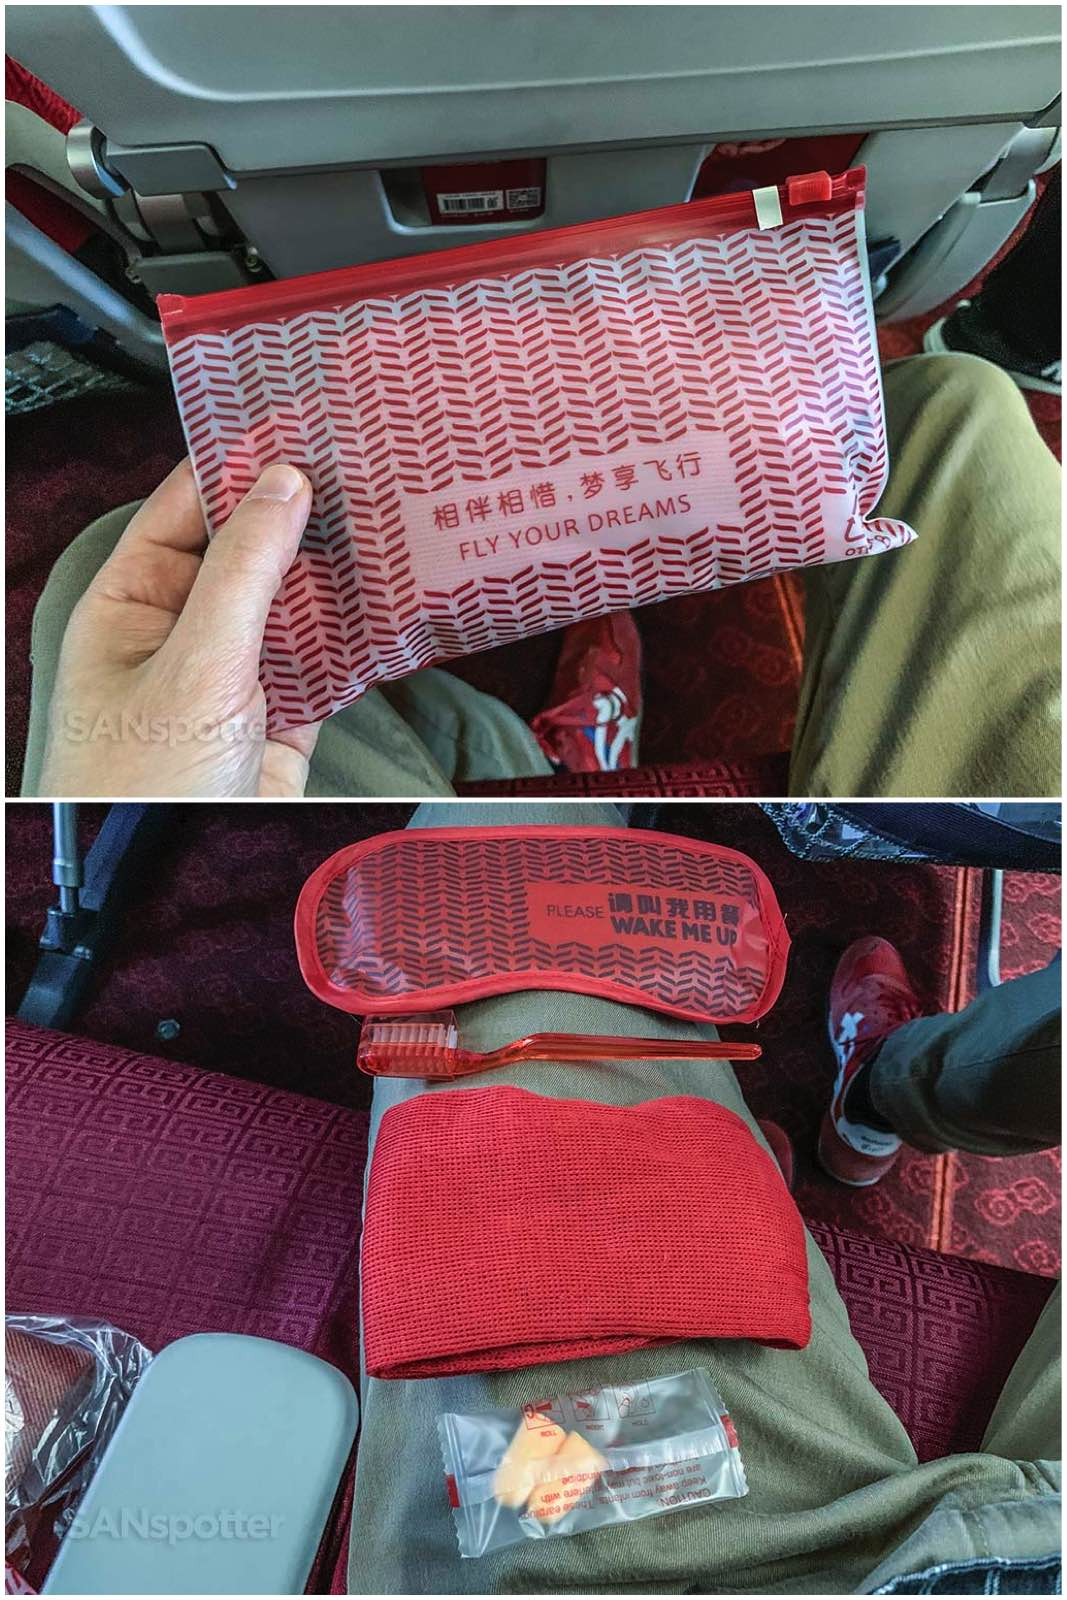 Hainan Airlines economy class amenity kit